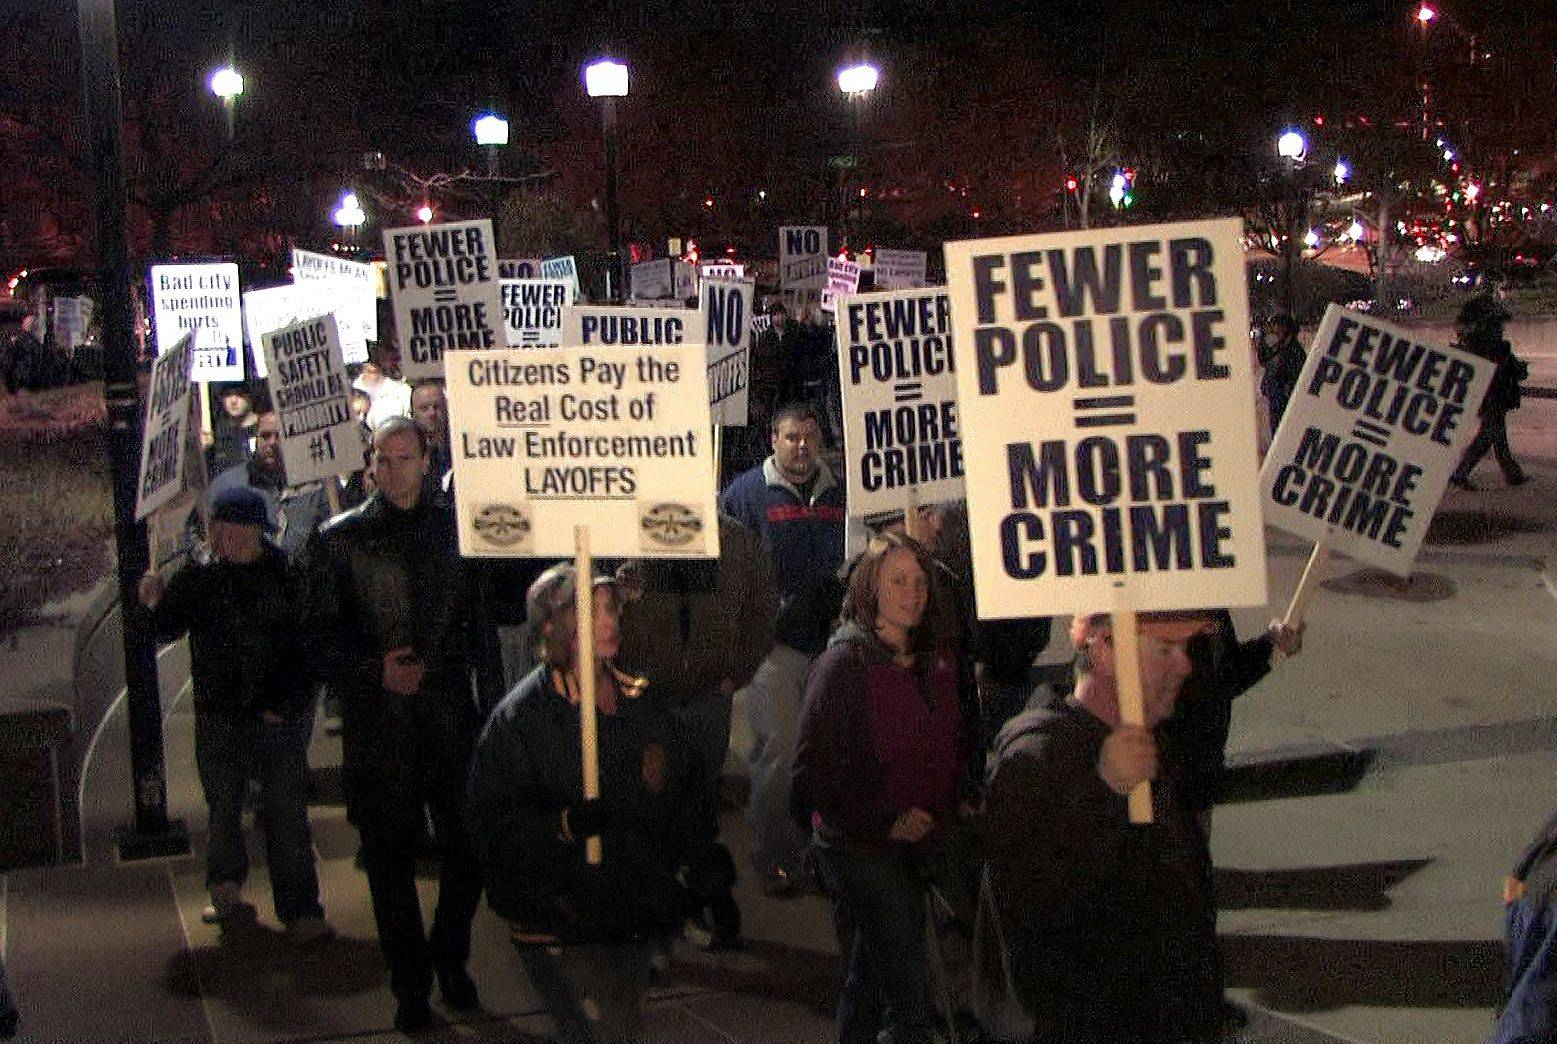 Naperville police union members and their supporters conduct an informational picket on Tuesday outside city hall to protest the layoffs of six police officers.